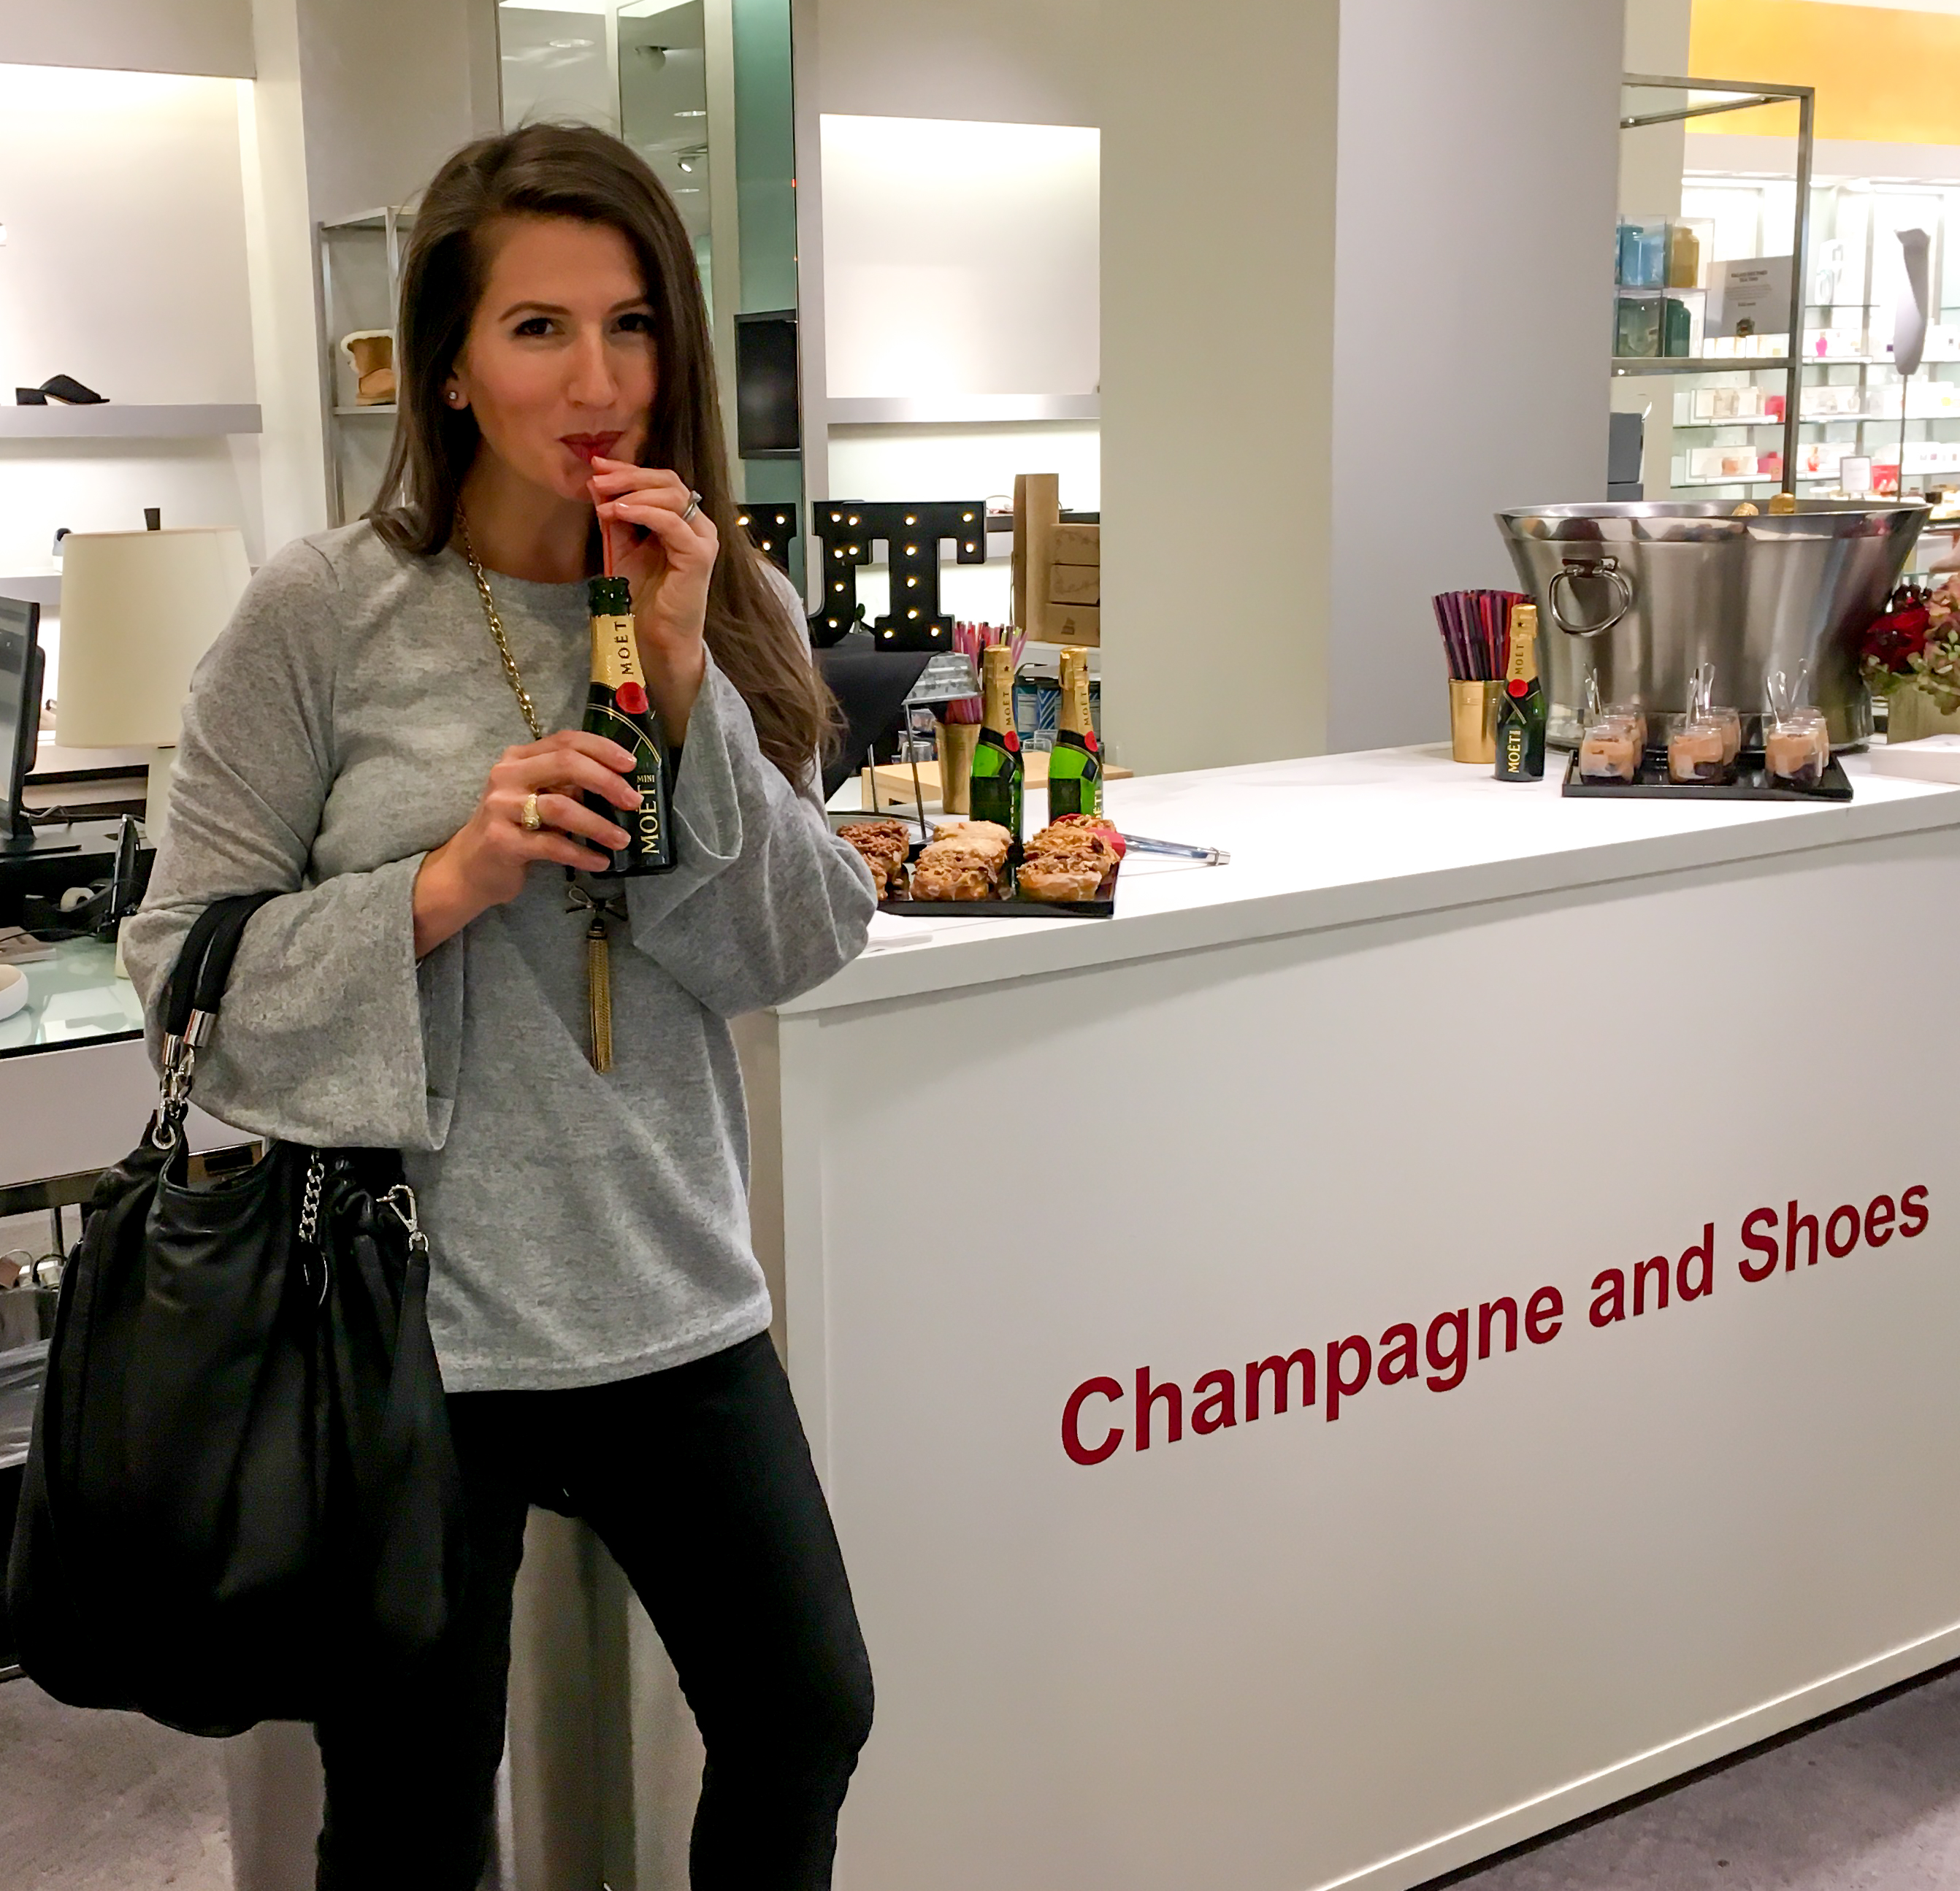 Mini Moet Bottles at Neiman Marcus Champagne and Shoes Event | San Antonio, TX | Cathedrals and Cafes Blog